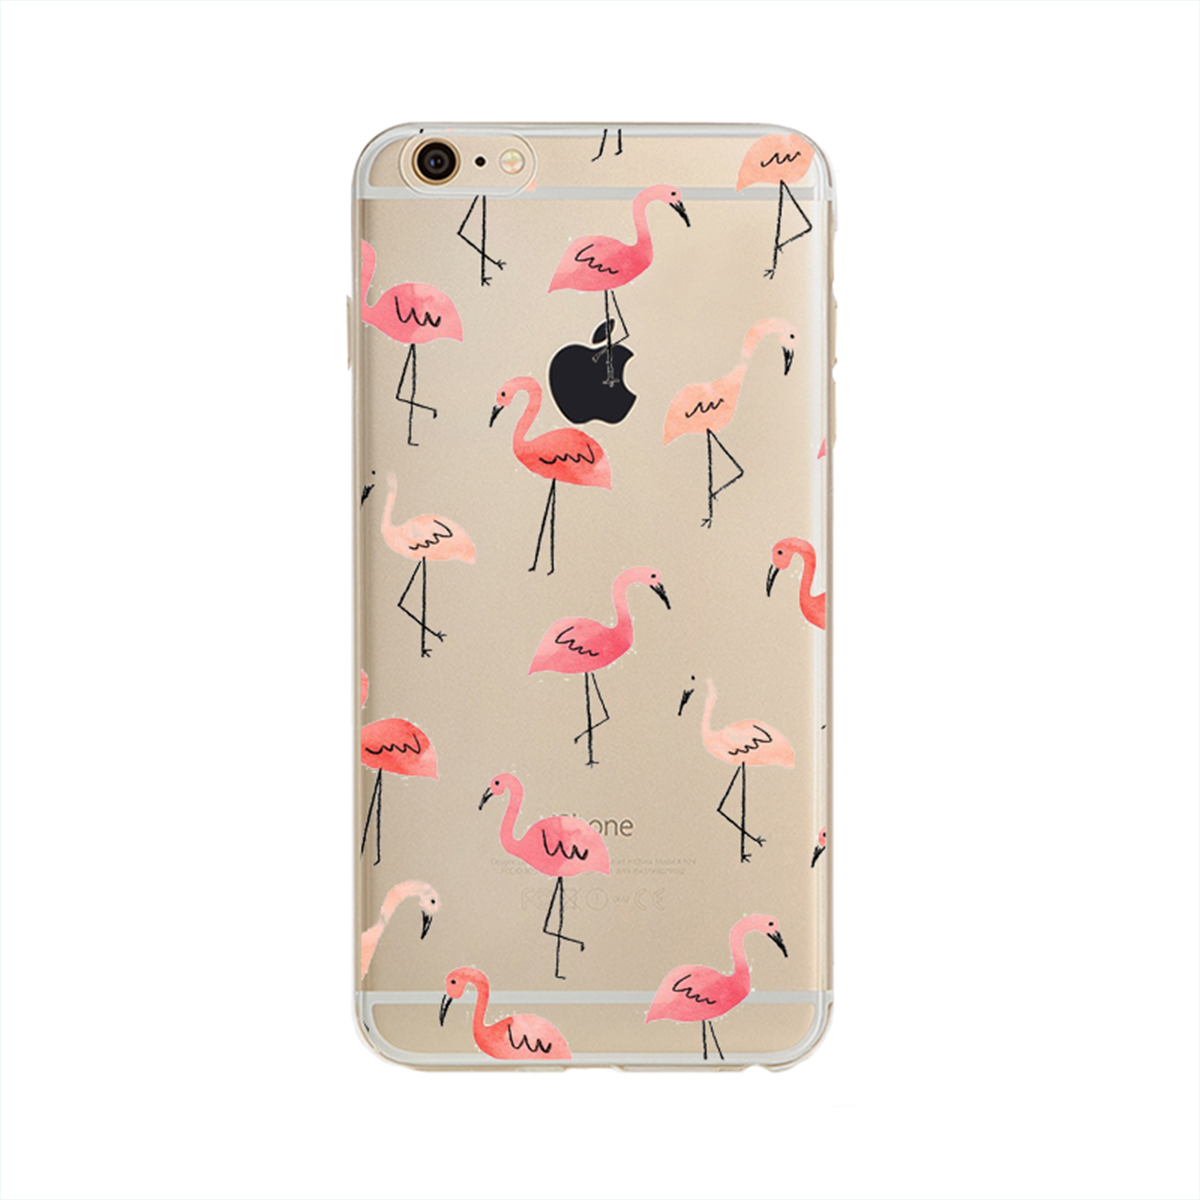 NOXCASE Hardcase für iPhone 7 Plus - Flamingo